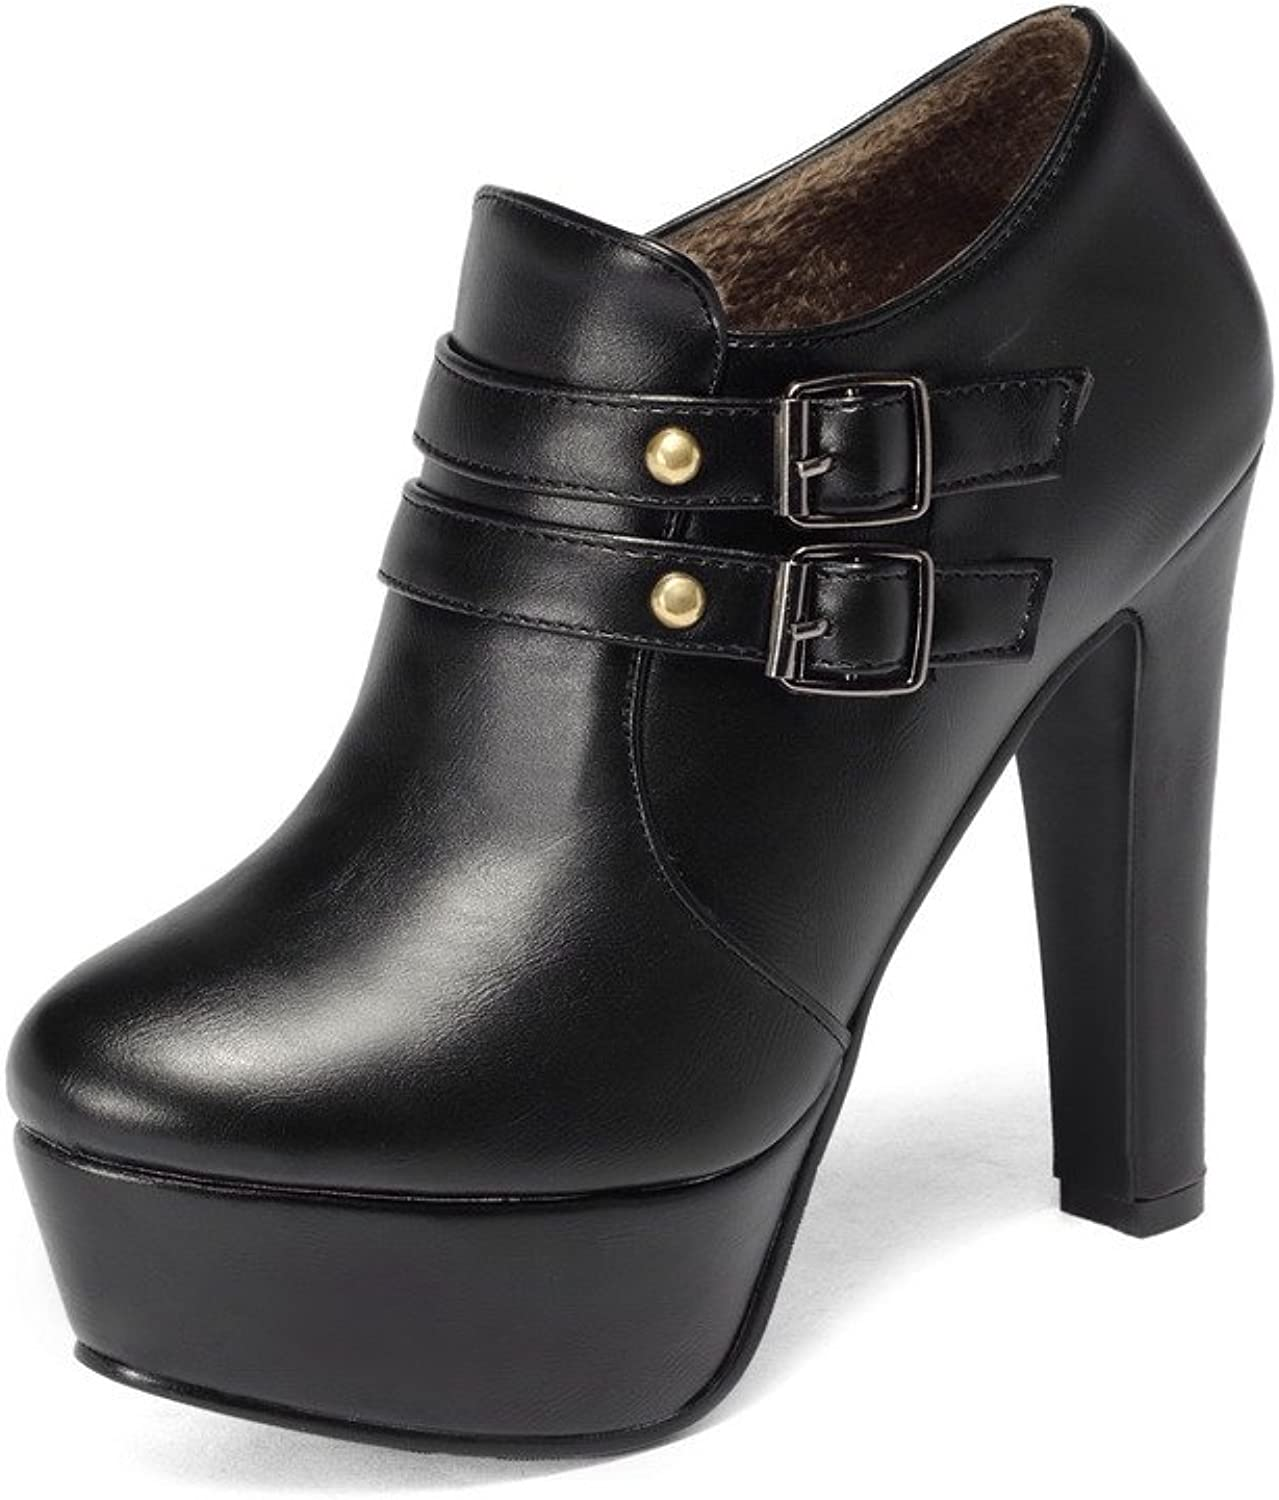 WeenFashion Women's Round Closed Toe Ankle High High Heels Solid Artificial Cow Leather Boots